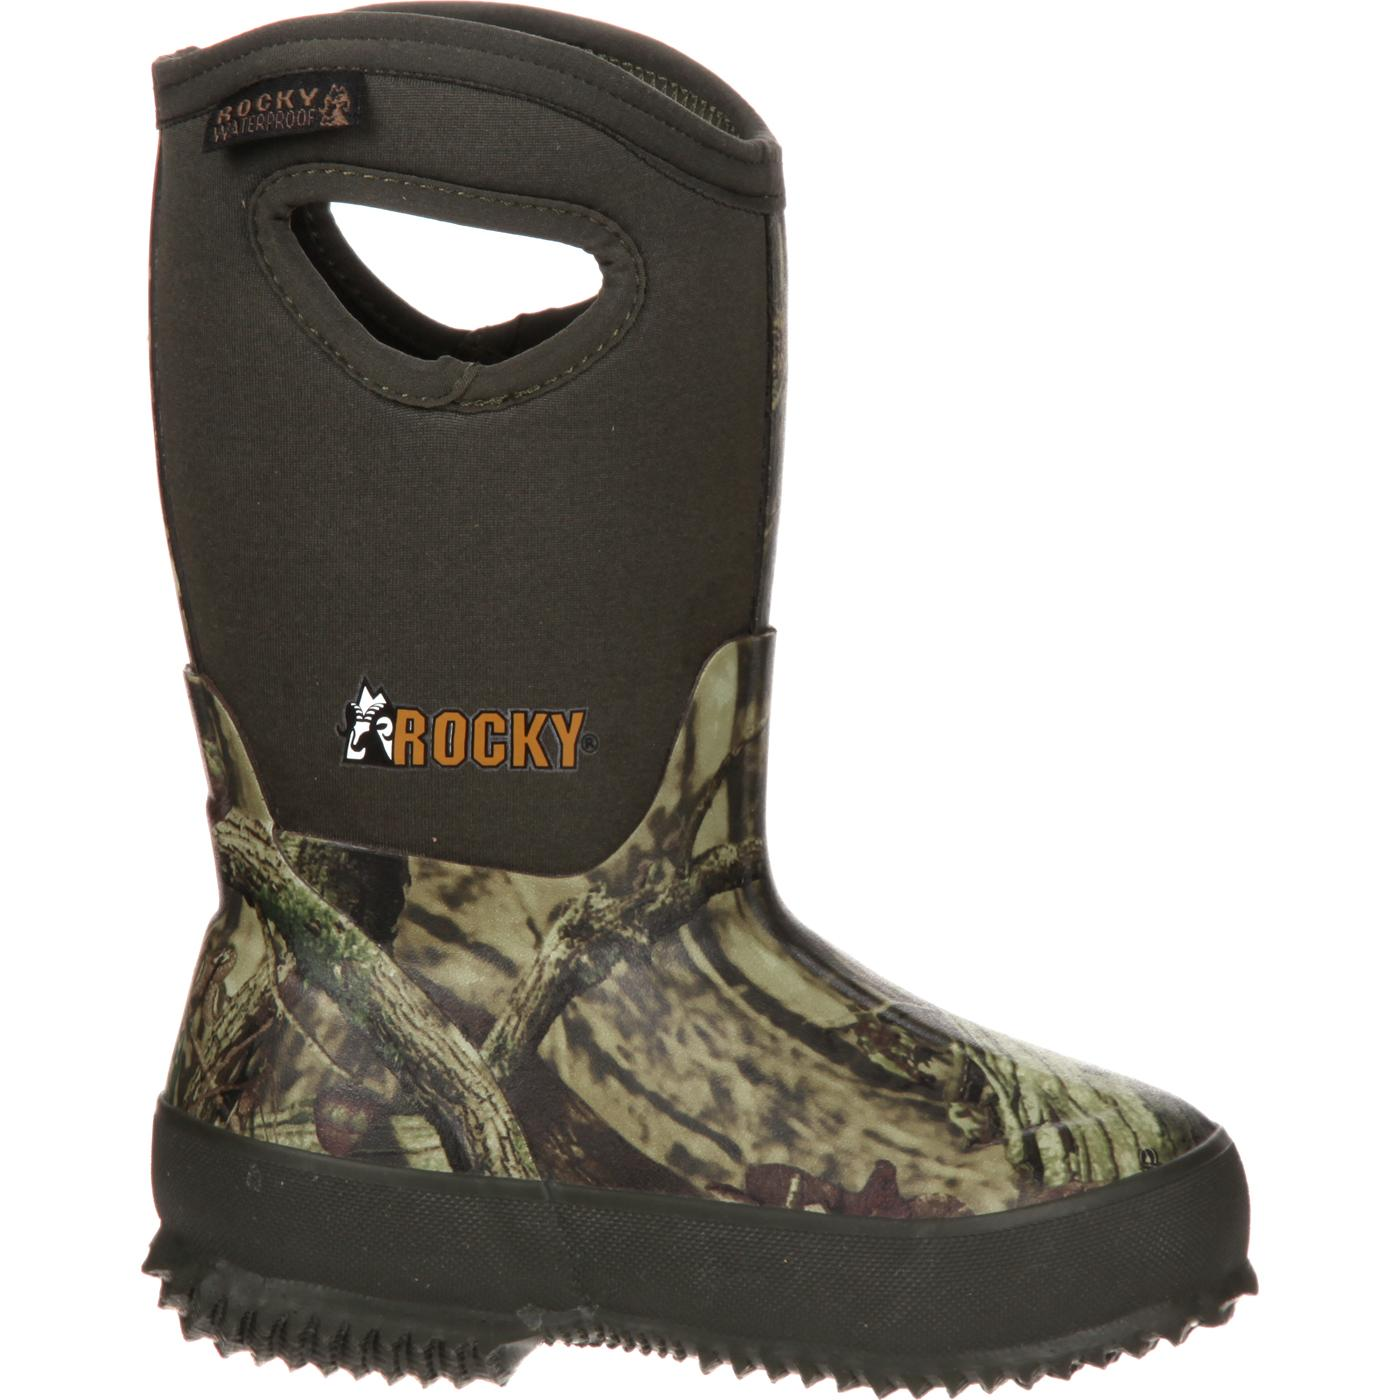 acf7f3865 Rocky Core Kids  Rubber Waterproof Insulated Pull-on Boot